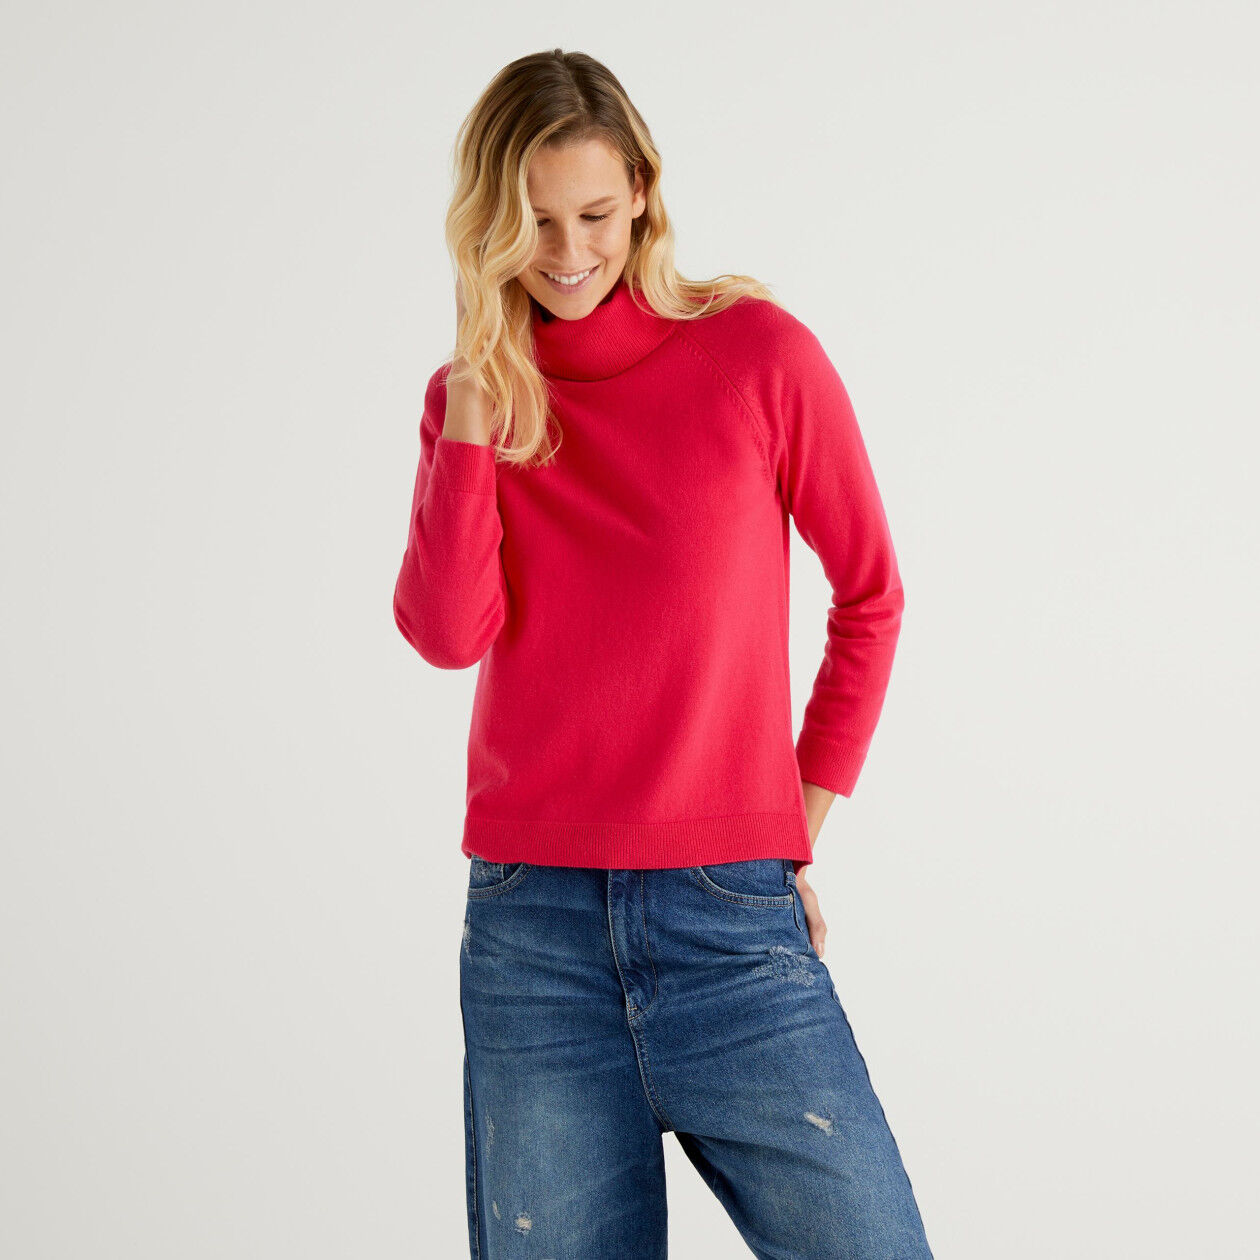 Fuchsia turtleneck sweater in cashmere and wool blend